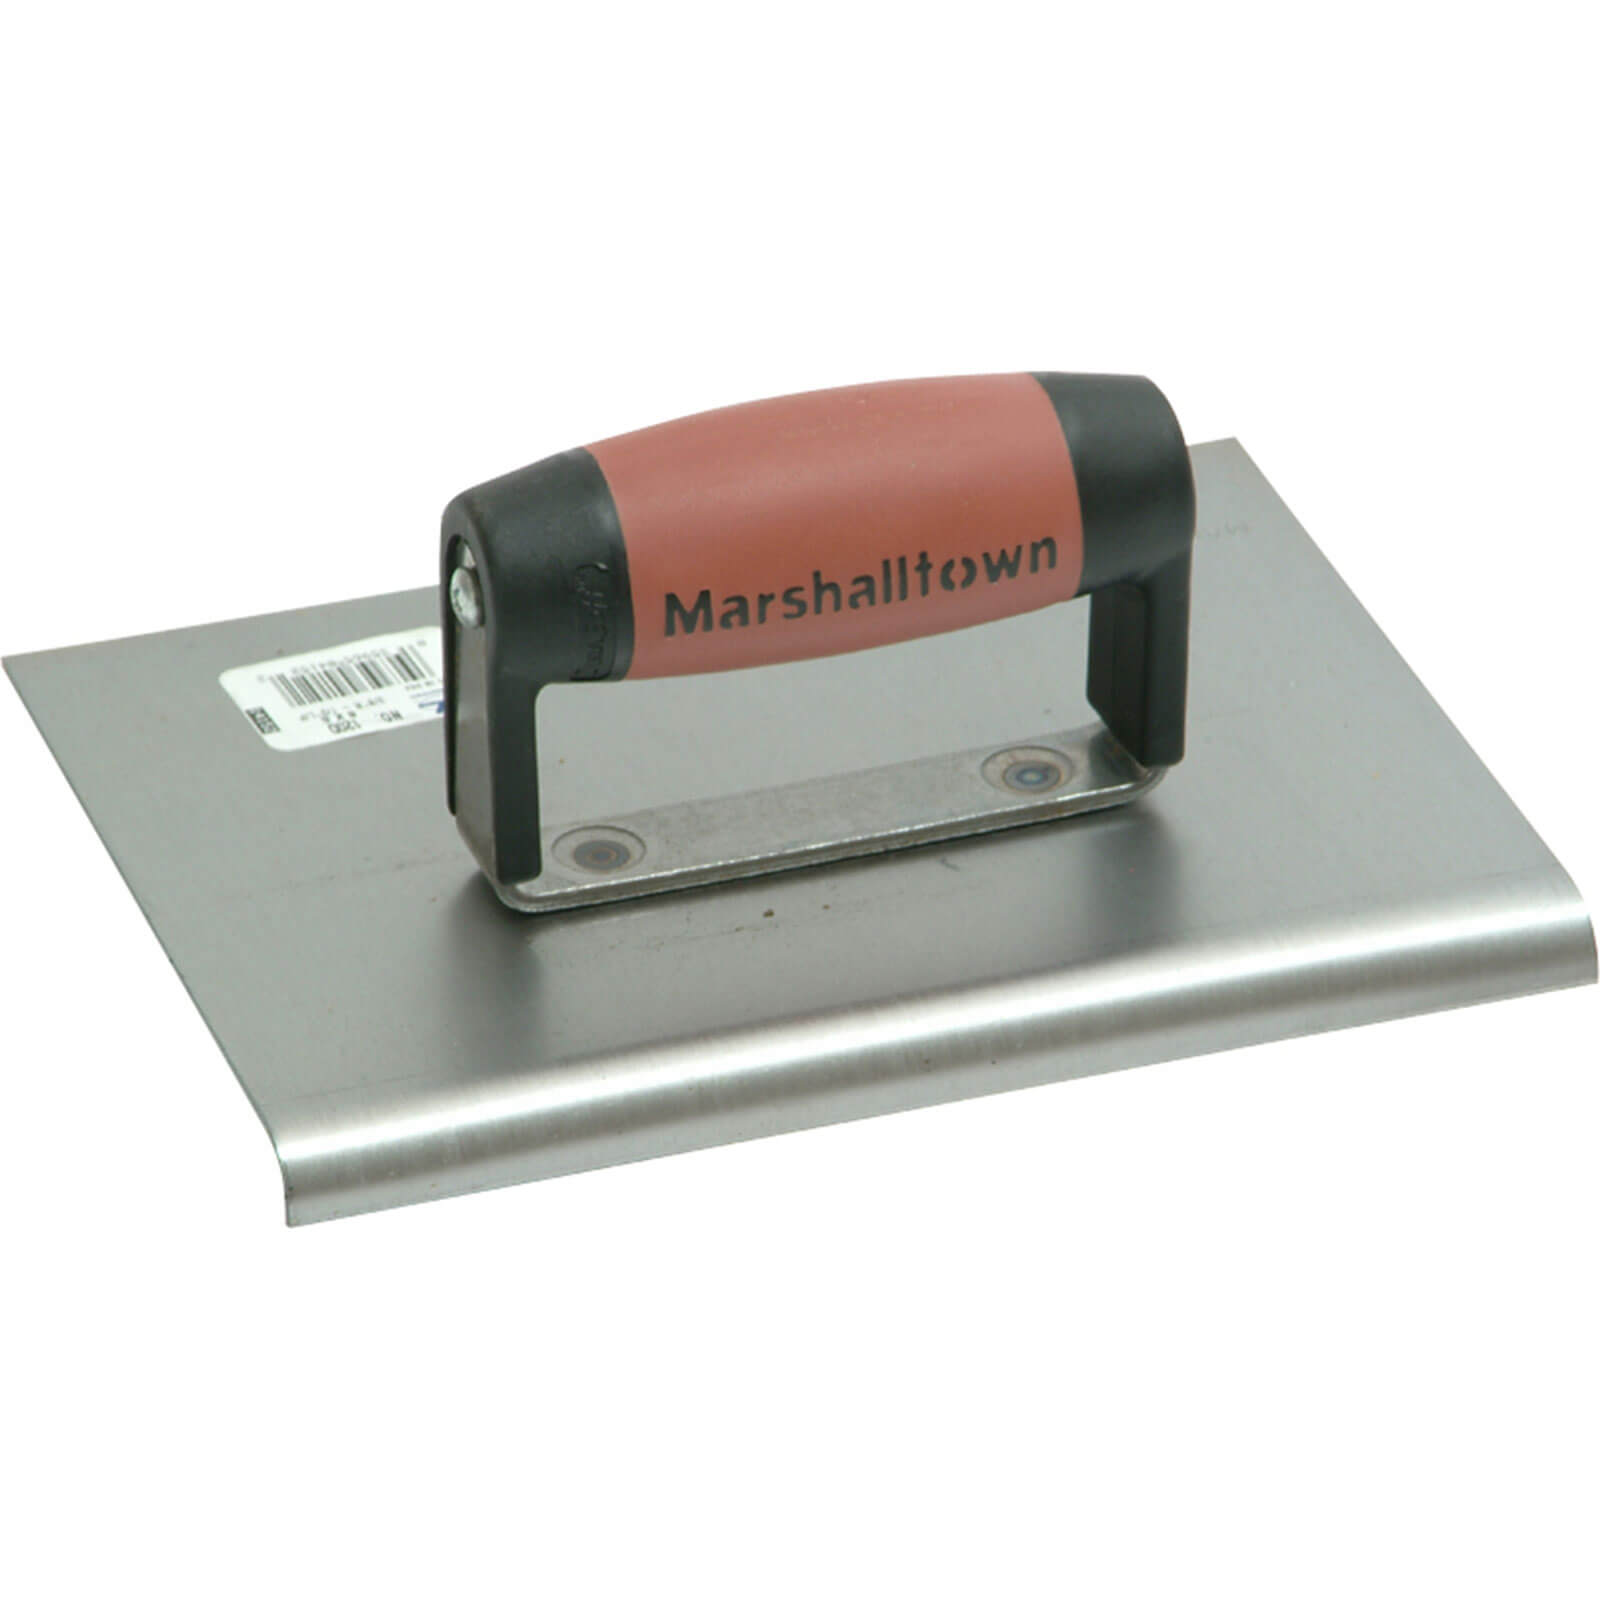 Image of Marshalltown 120D Cement Edger